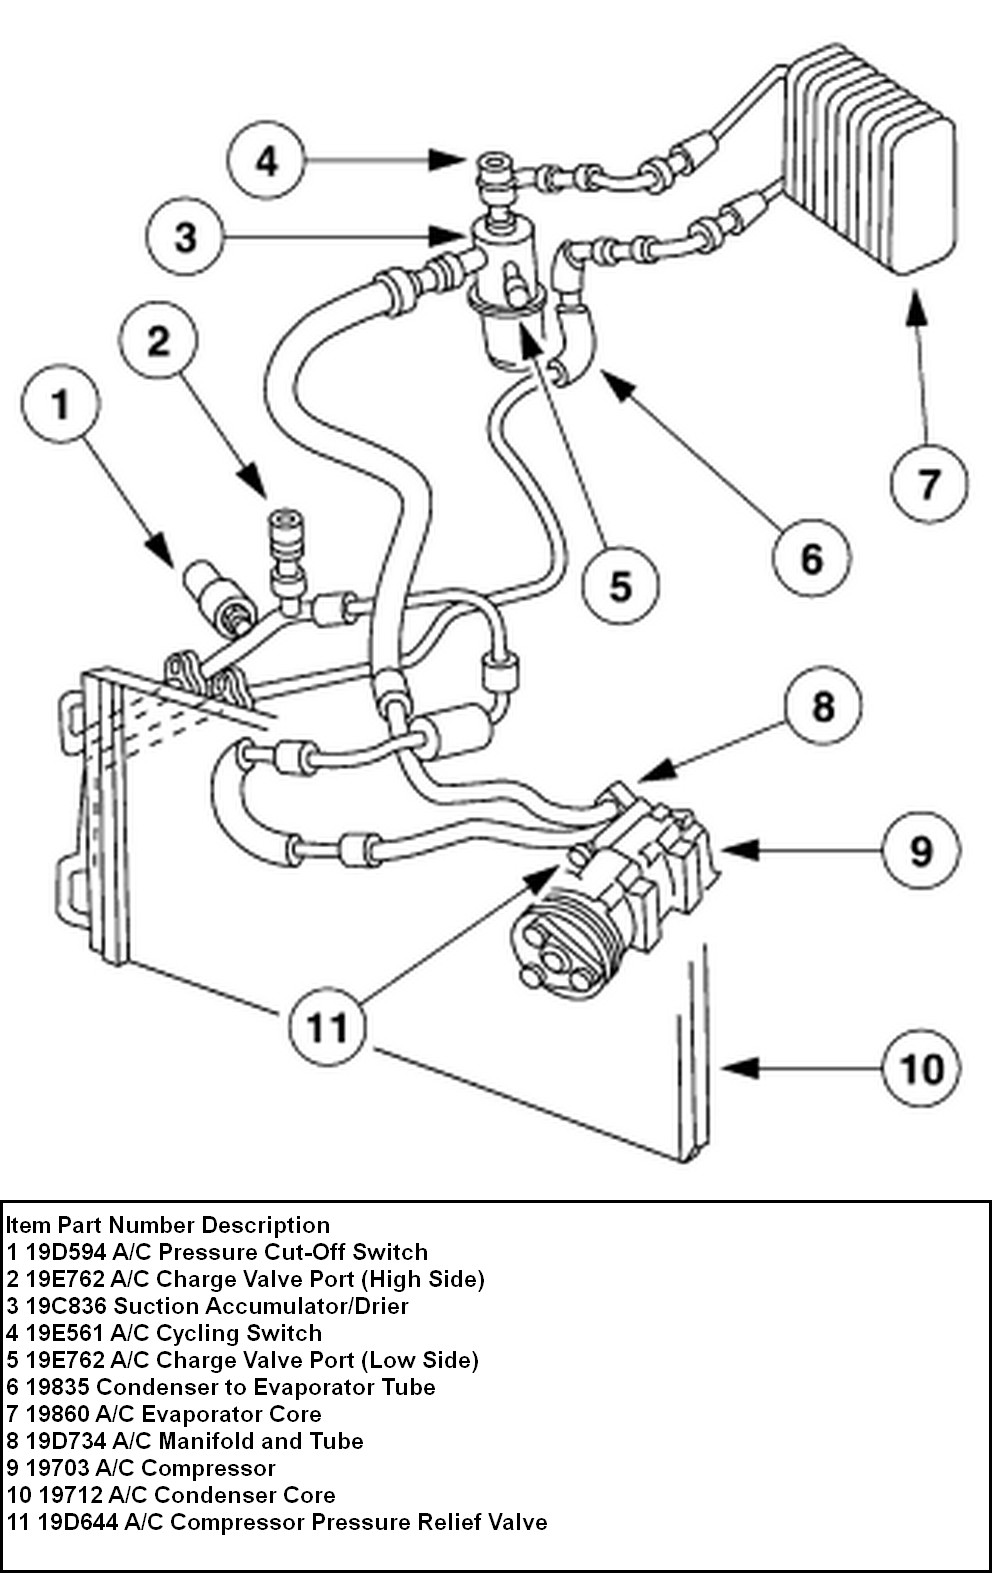 Swell Ford Expedition Ac Diagram Wiring Diagram Online Wiring Cloud Onicaxeromohammedshrineorg